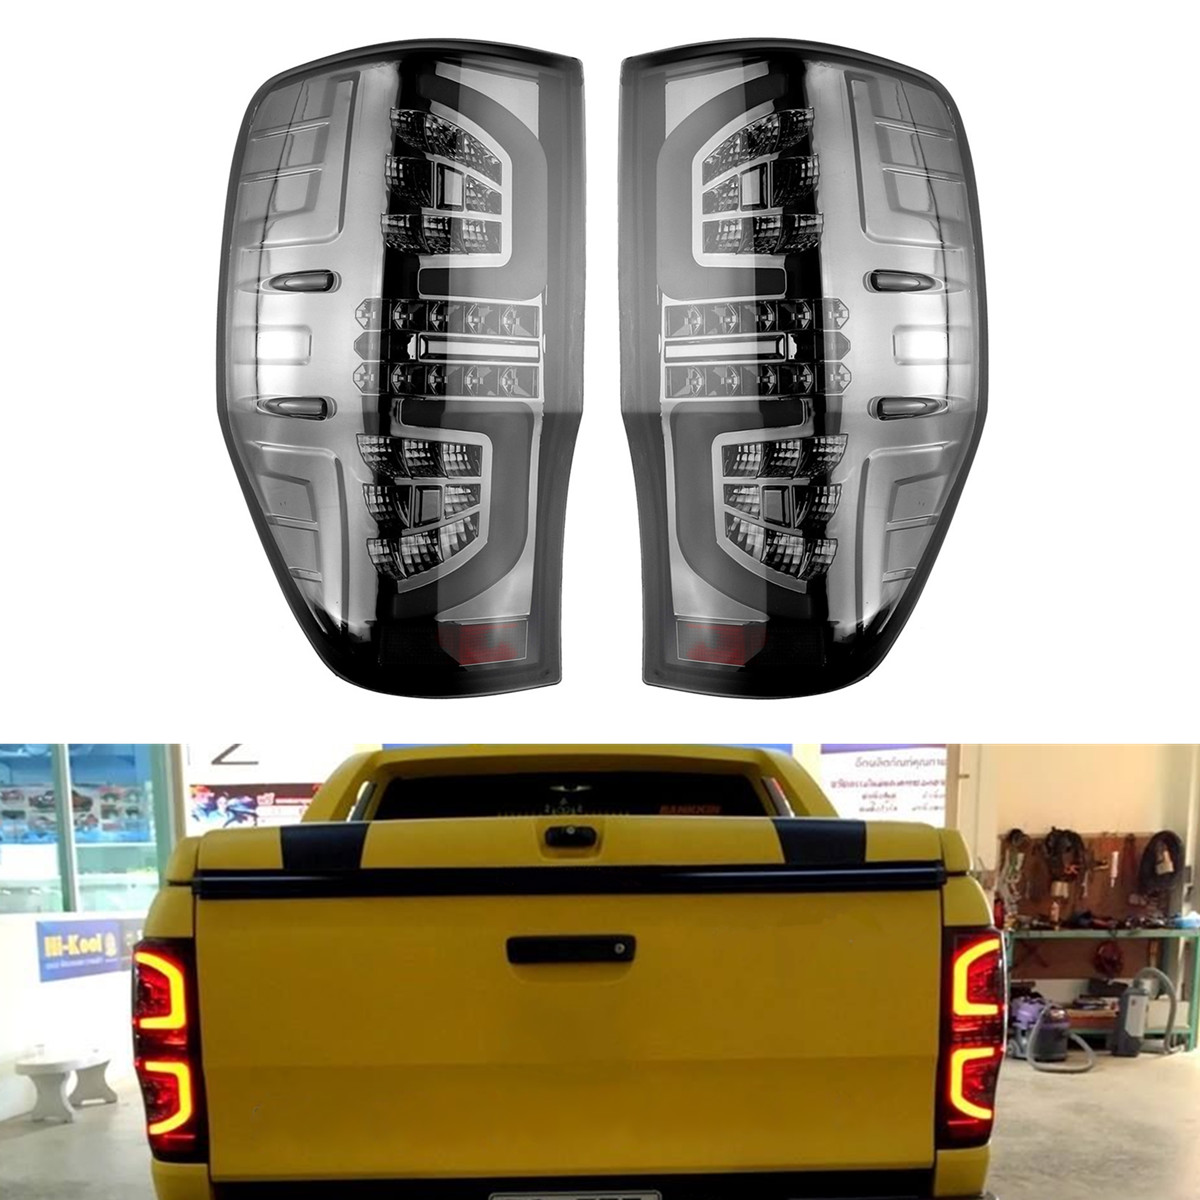 1Pair Rear Tail Lights Lamp for Ford Ranger PX T6 MK2 XL XLT XLS Wildtrak AT Smoked LED Making Installation Breeze Match Factory